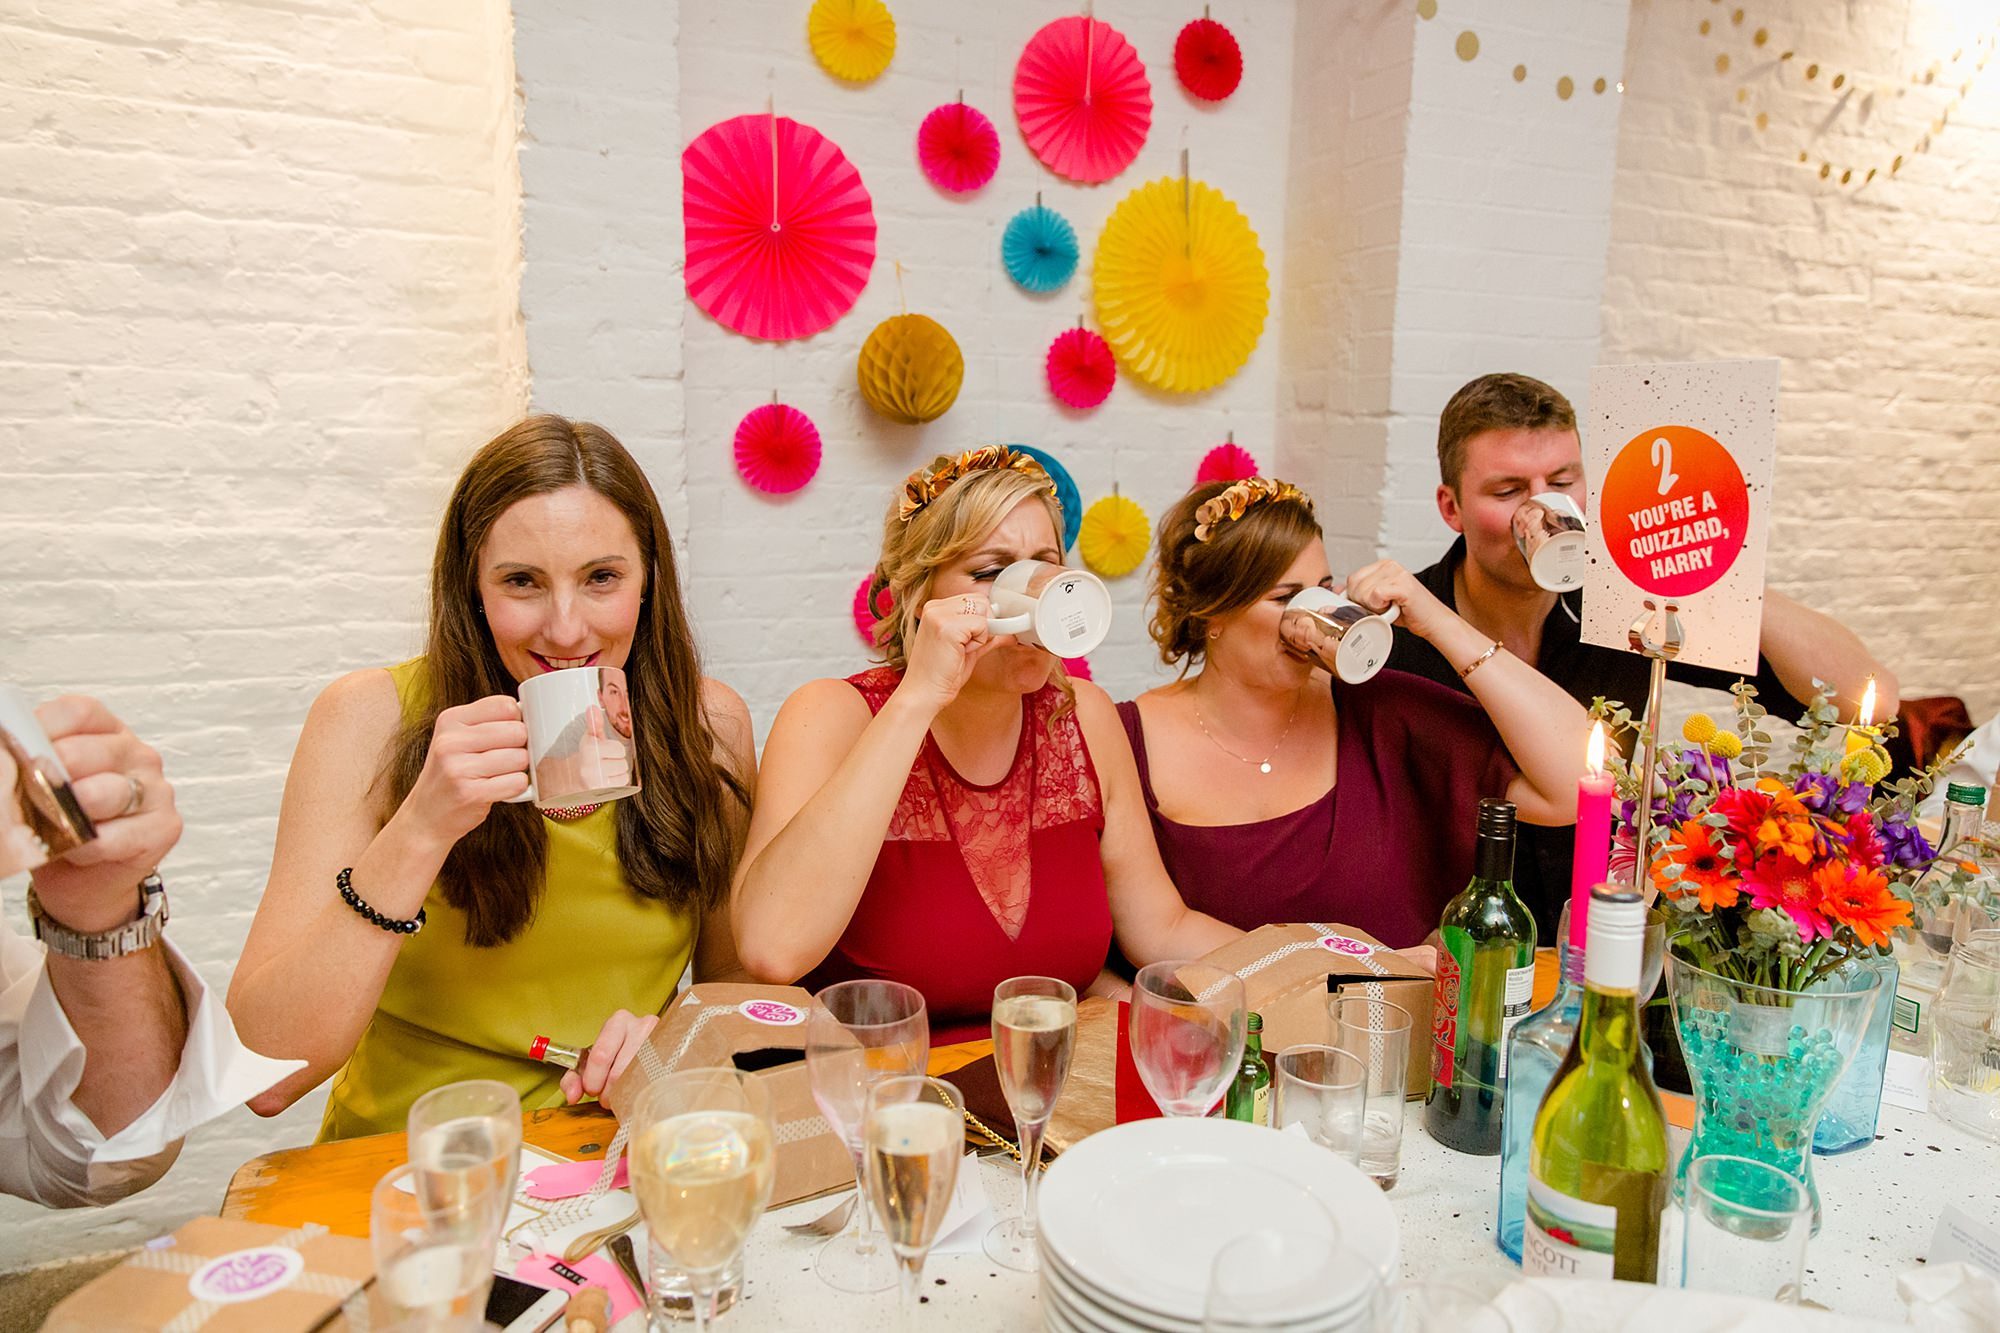 Fun London Wedding guests do shots from personalised mugs